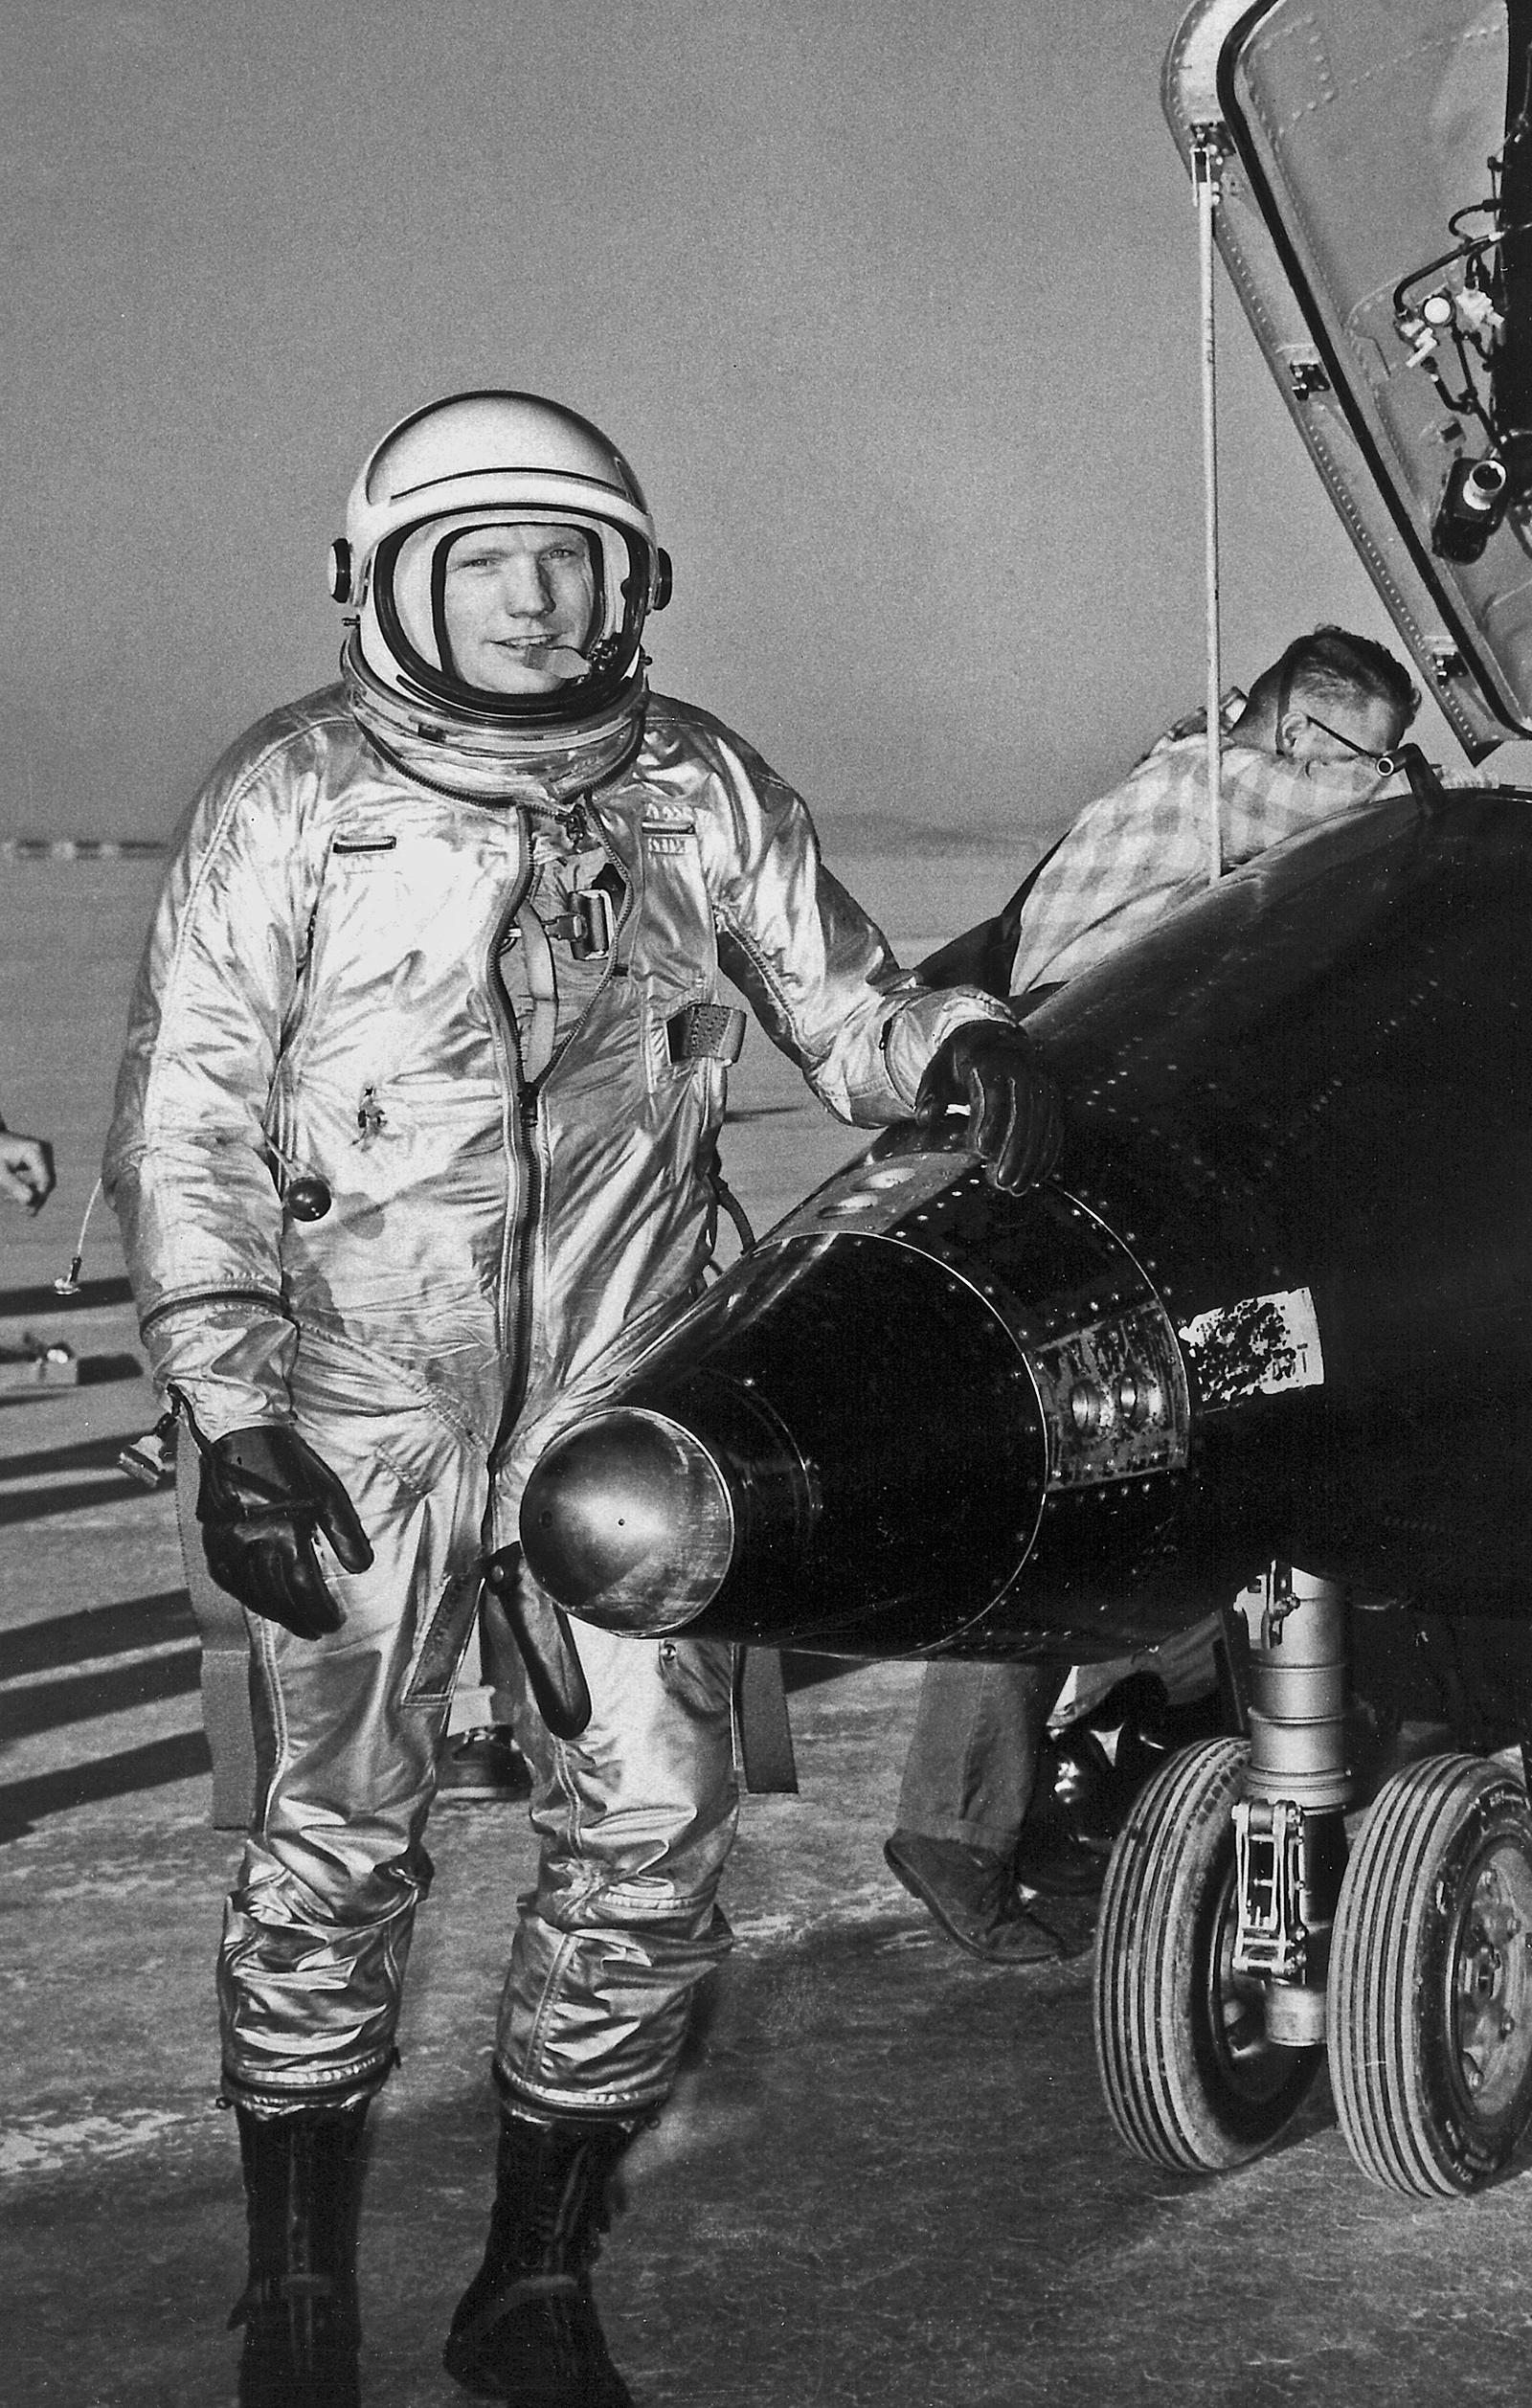 pilot of neil armstrong rocket - photo #1